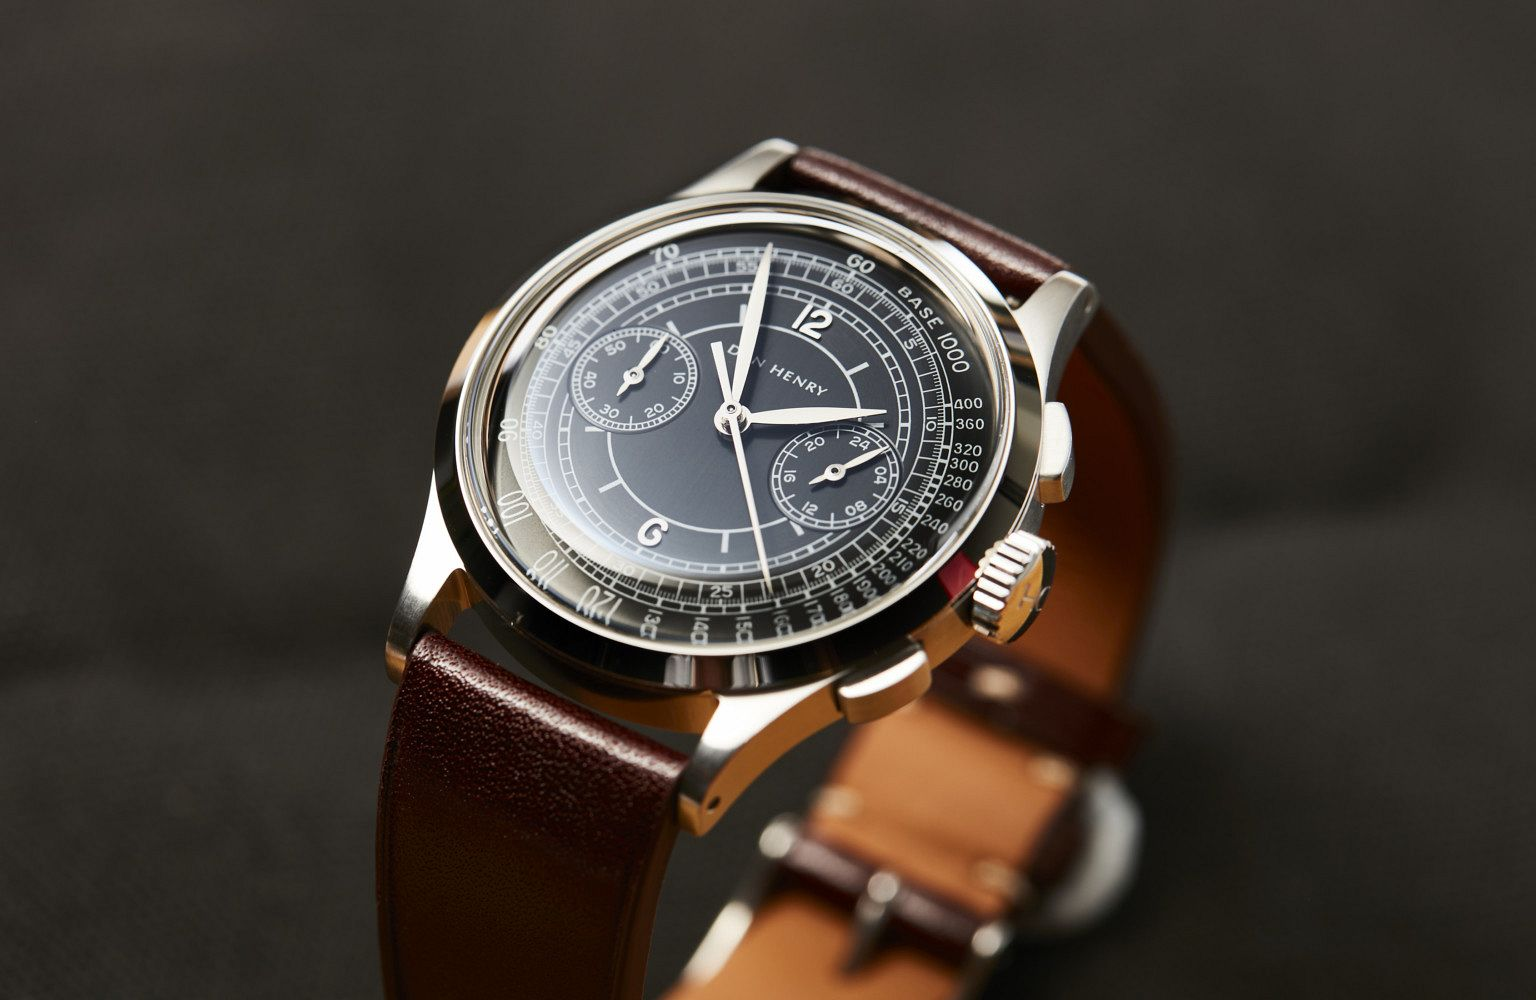 Dan Henry 1937 Dress Chronograph: An homage to the Art Deco era and the gorgeous watches it spawned.